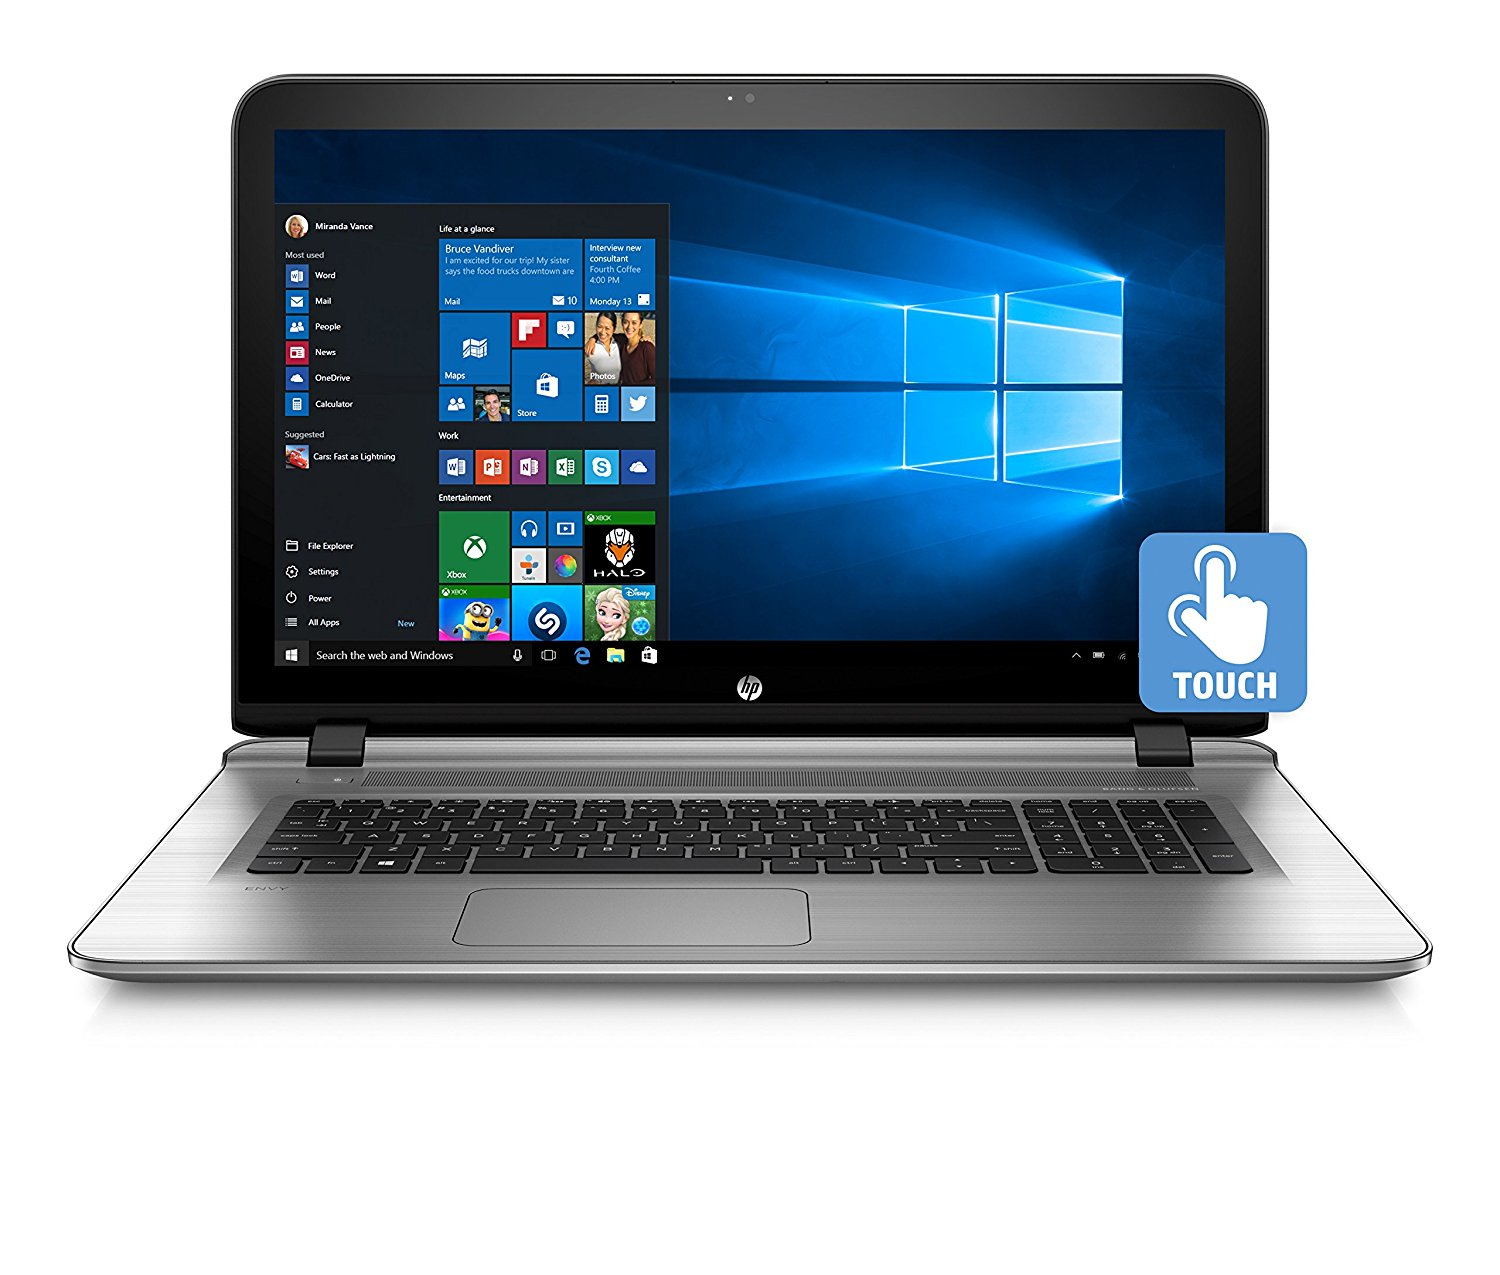 HP Envy Laptop 17.3″ Computer Review